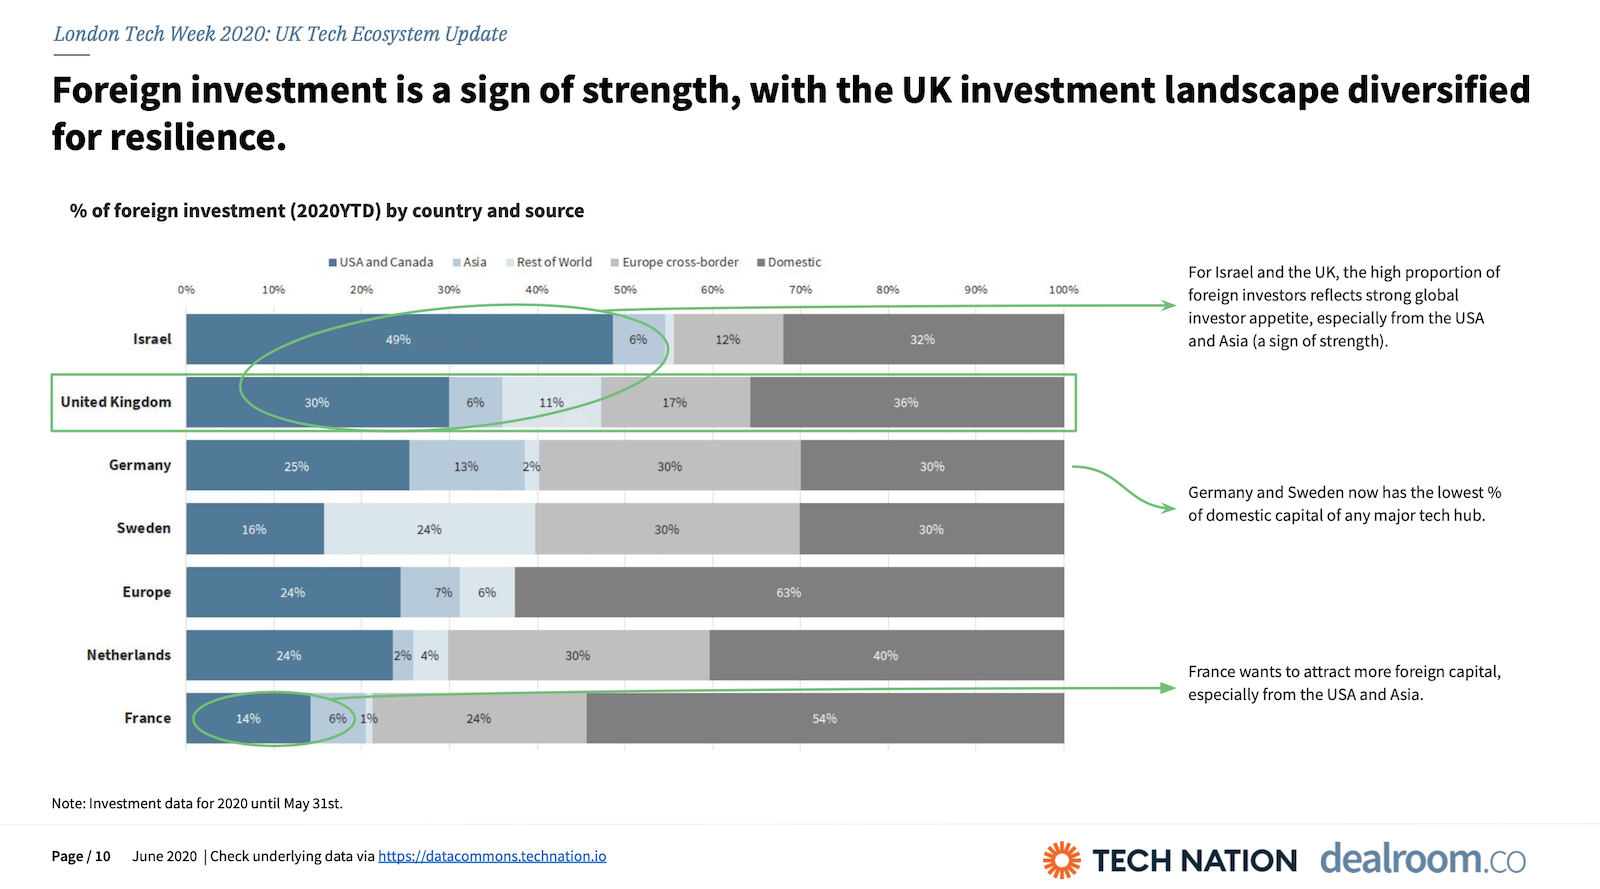 Foreign investment is a sign of strength, with the UK investment landscape diversified for resilience.